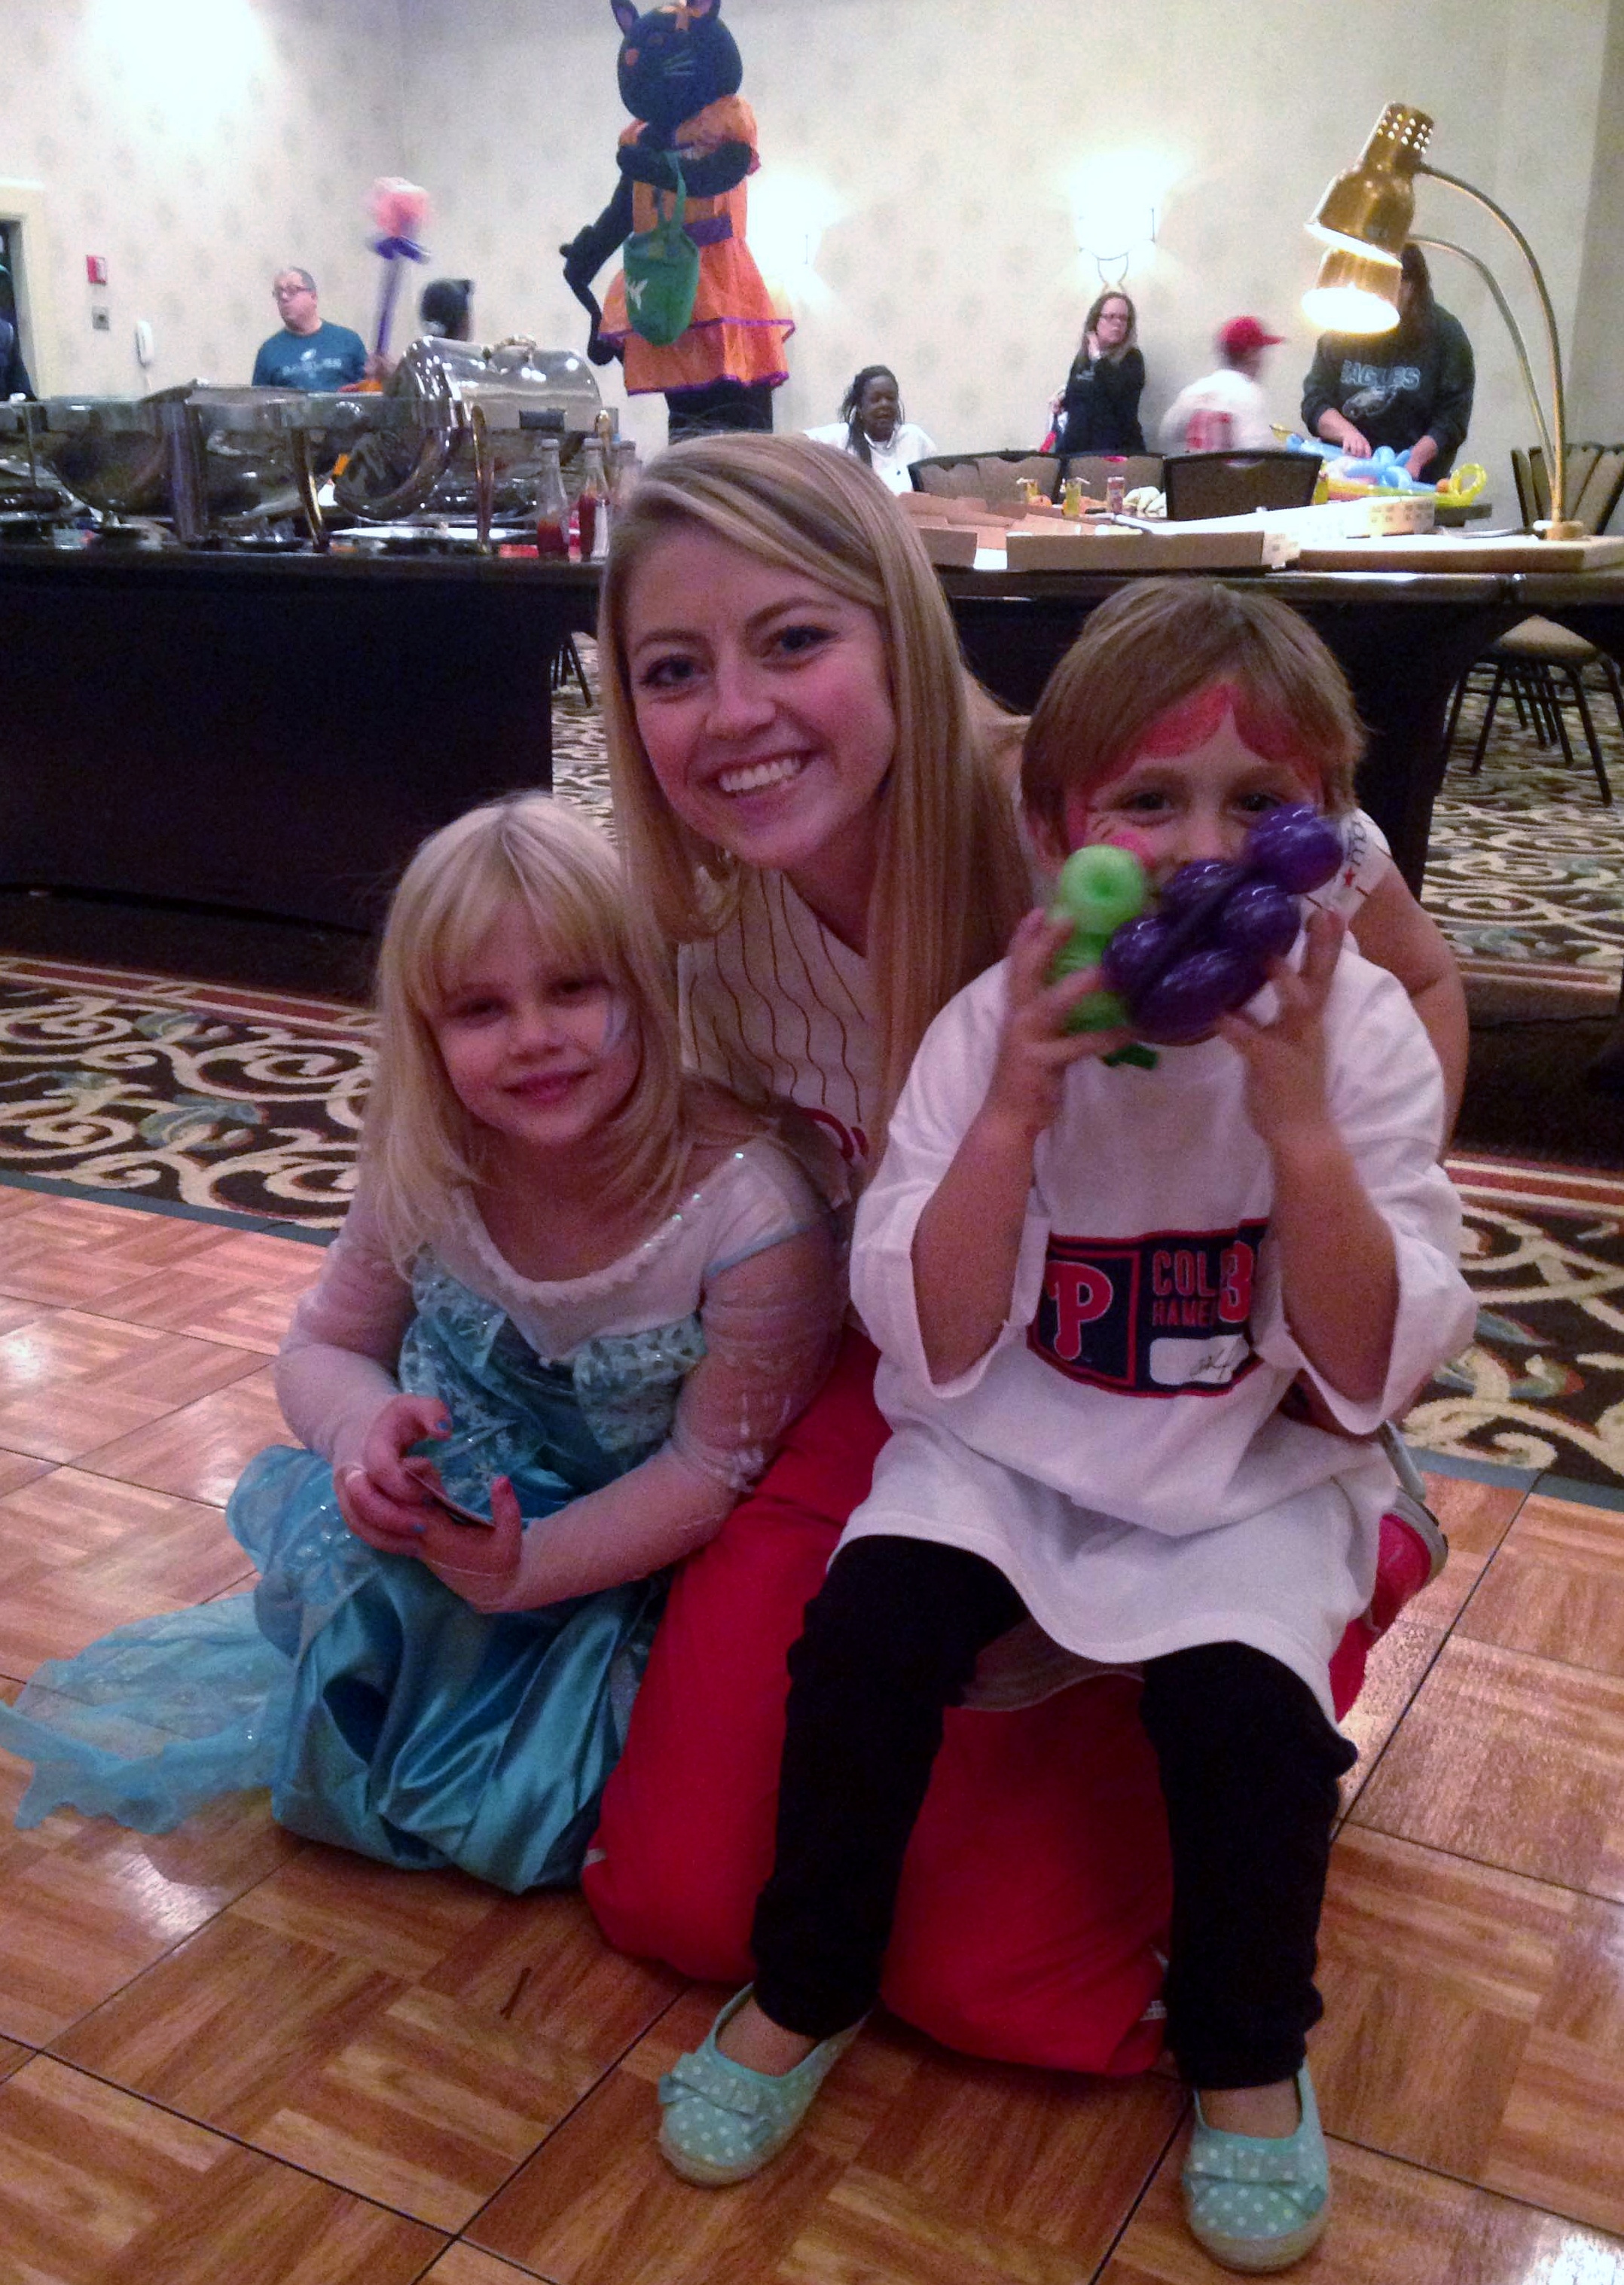 Taylor with kids at the CHOP benefit in October 2014. For more about Taylor's experience, see her favorite memory detailed below!